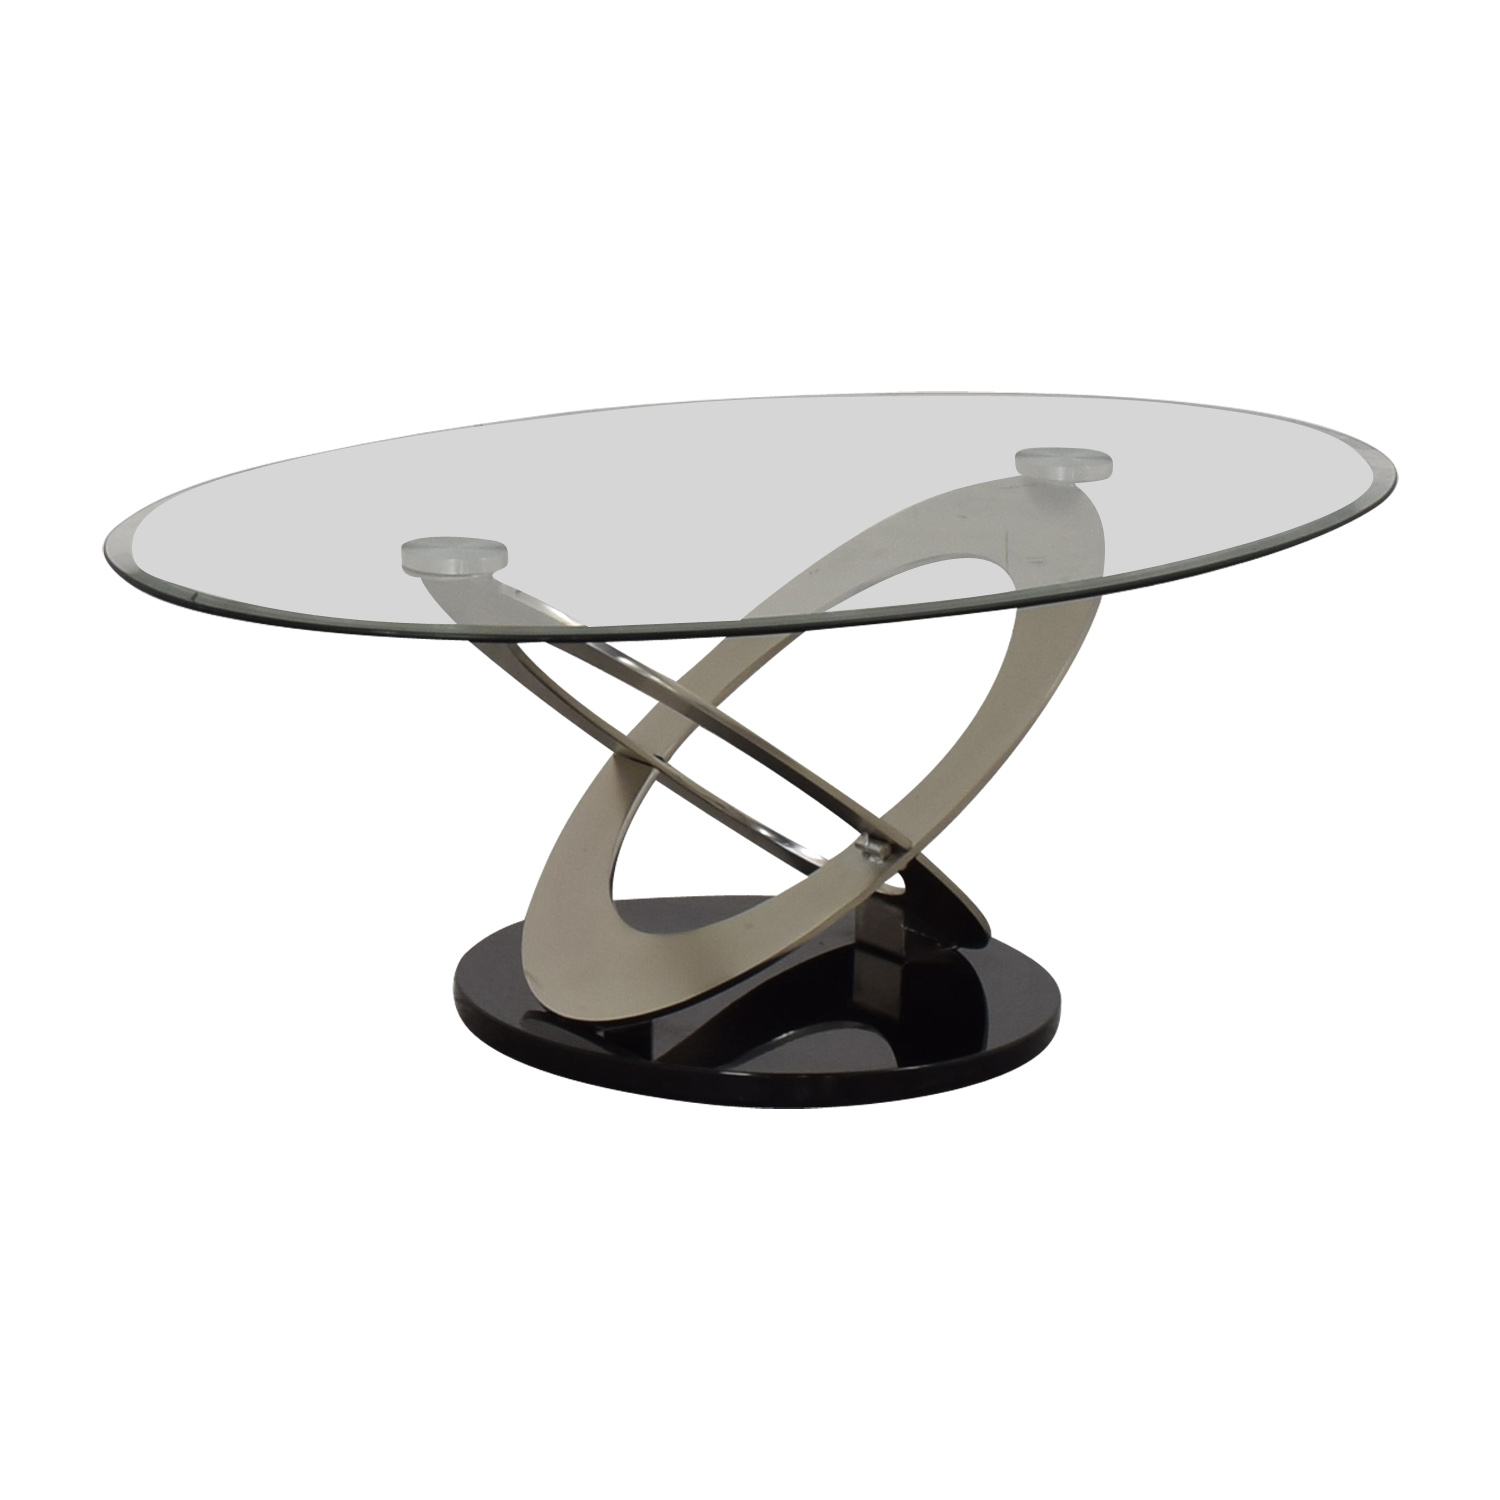 Homelegance Furniture Homelegance Furniture Firth Occasional Coffee Table nj